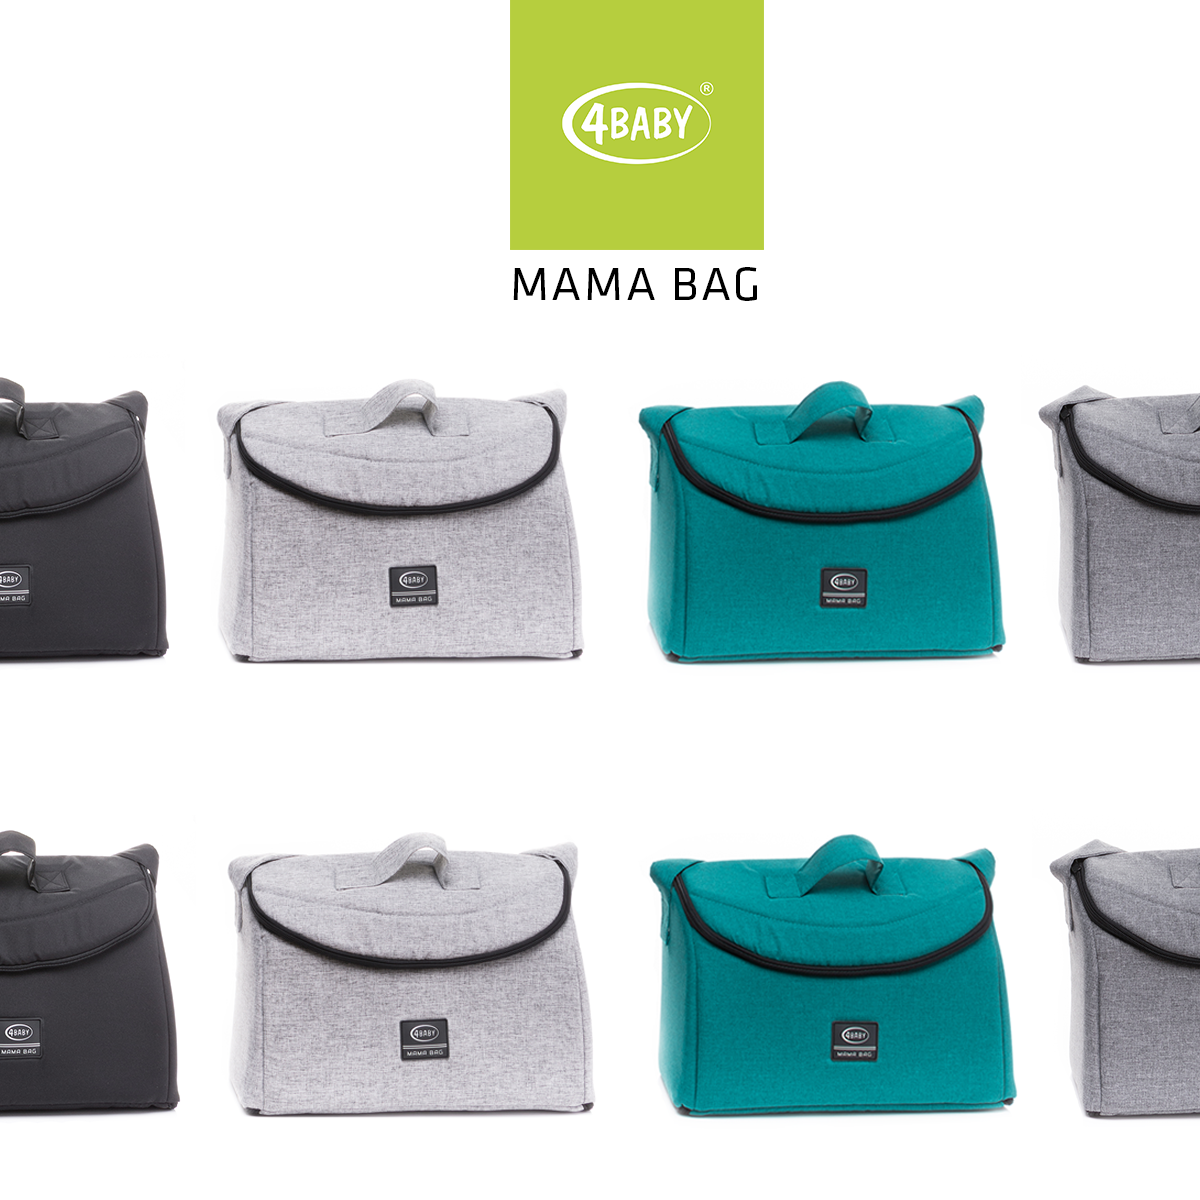 Mama Bag Bags Baby Shoes Shoes